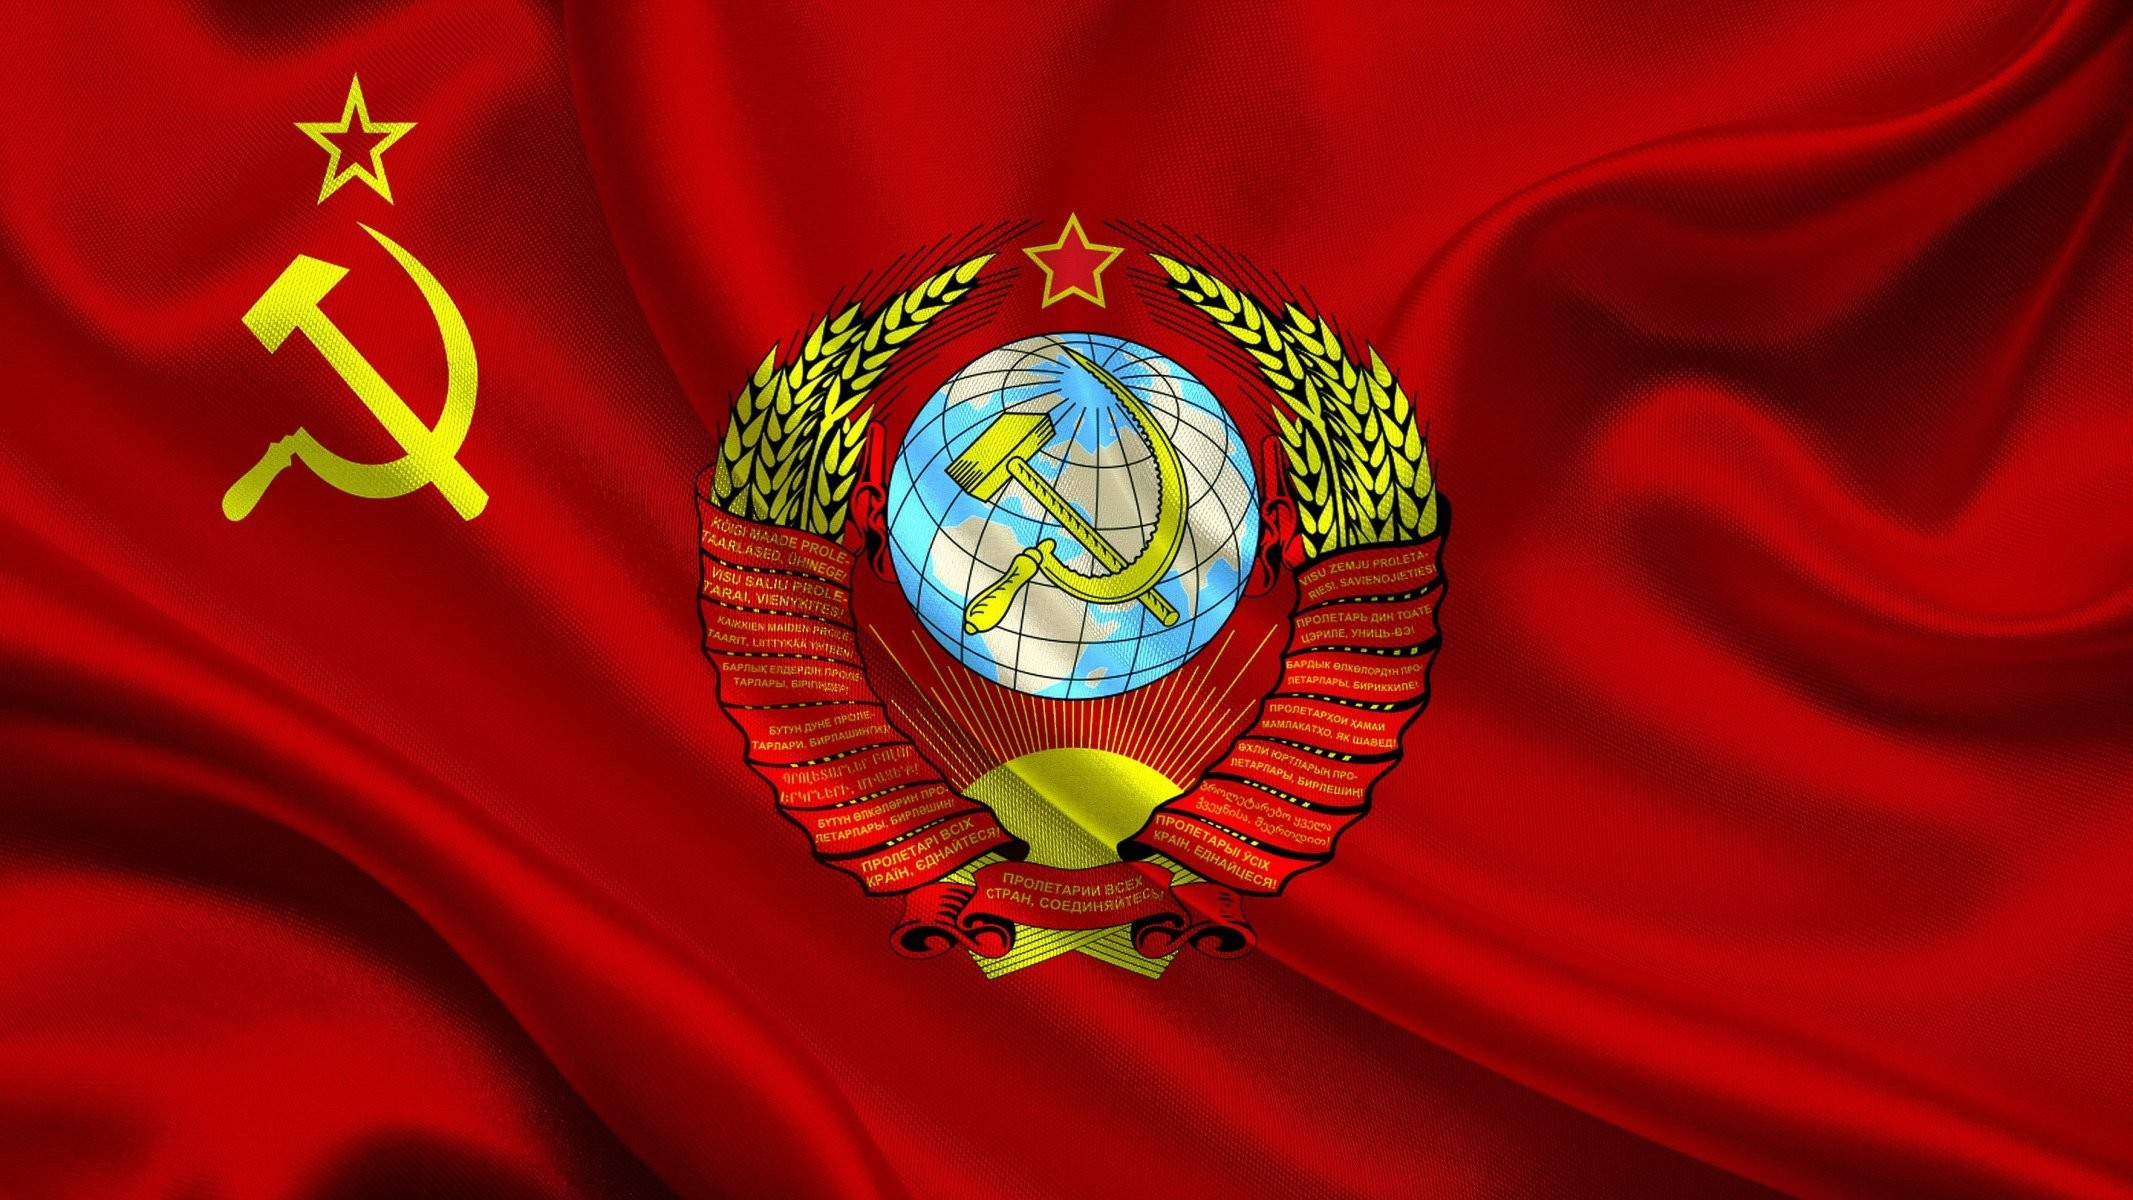 2133x1200 flag soviet union coat of arms soviet union